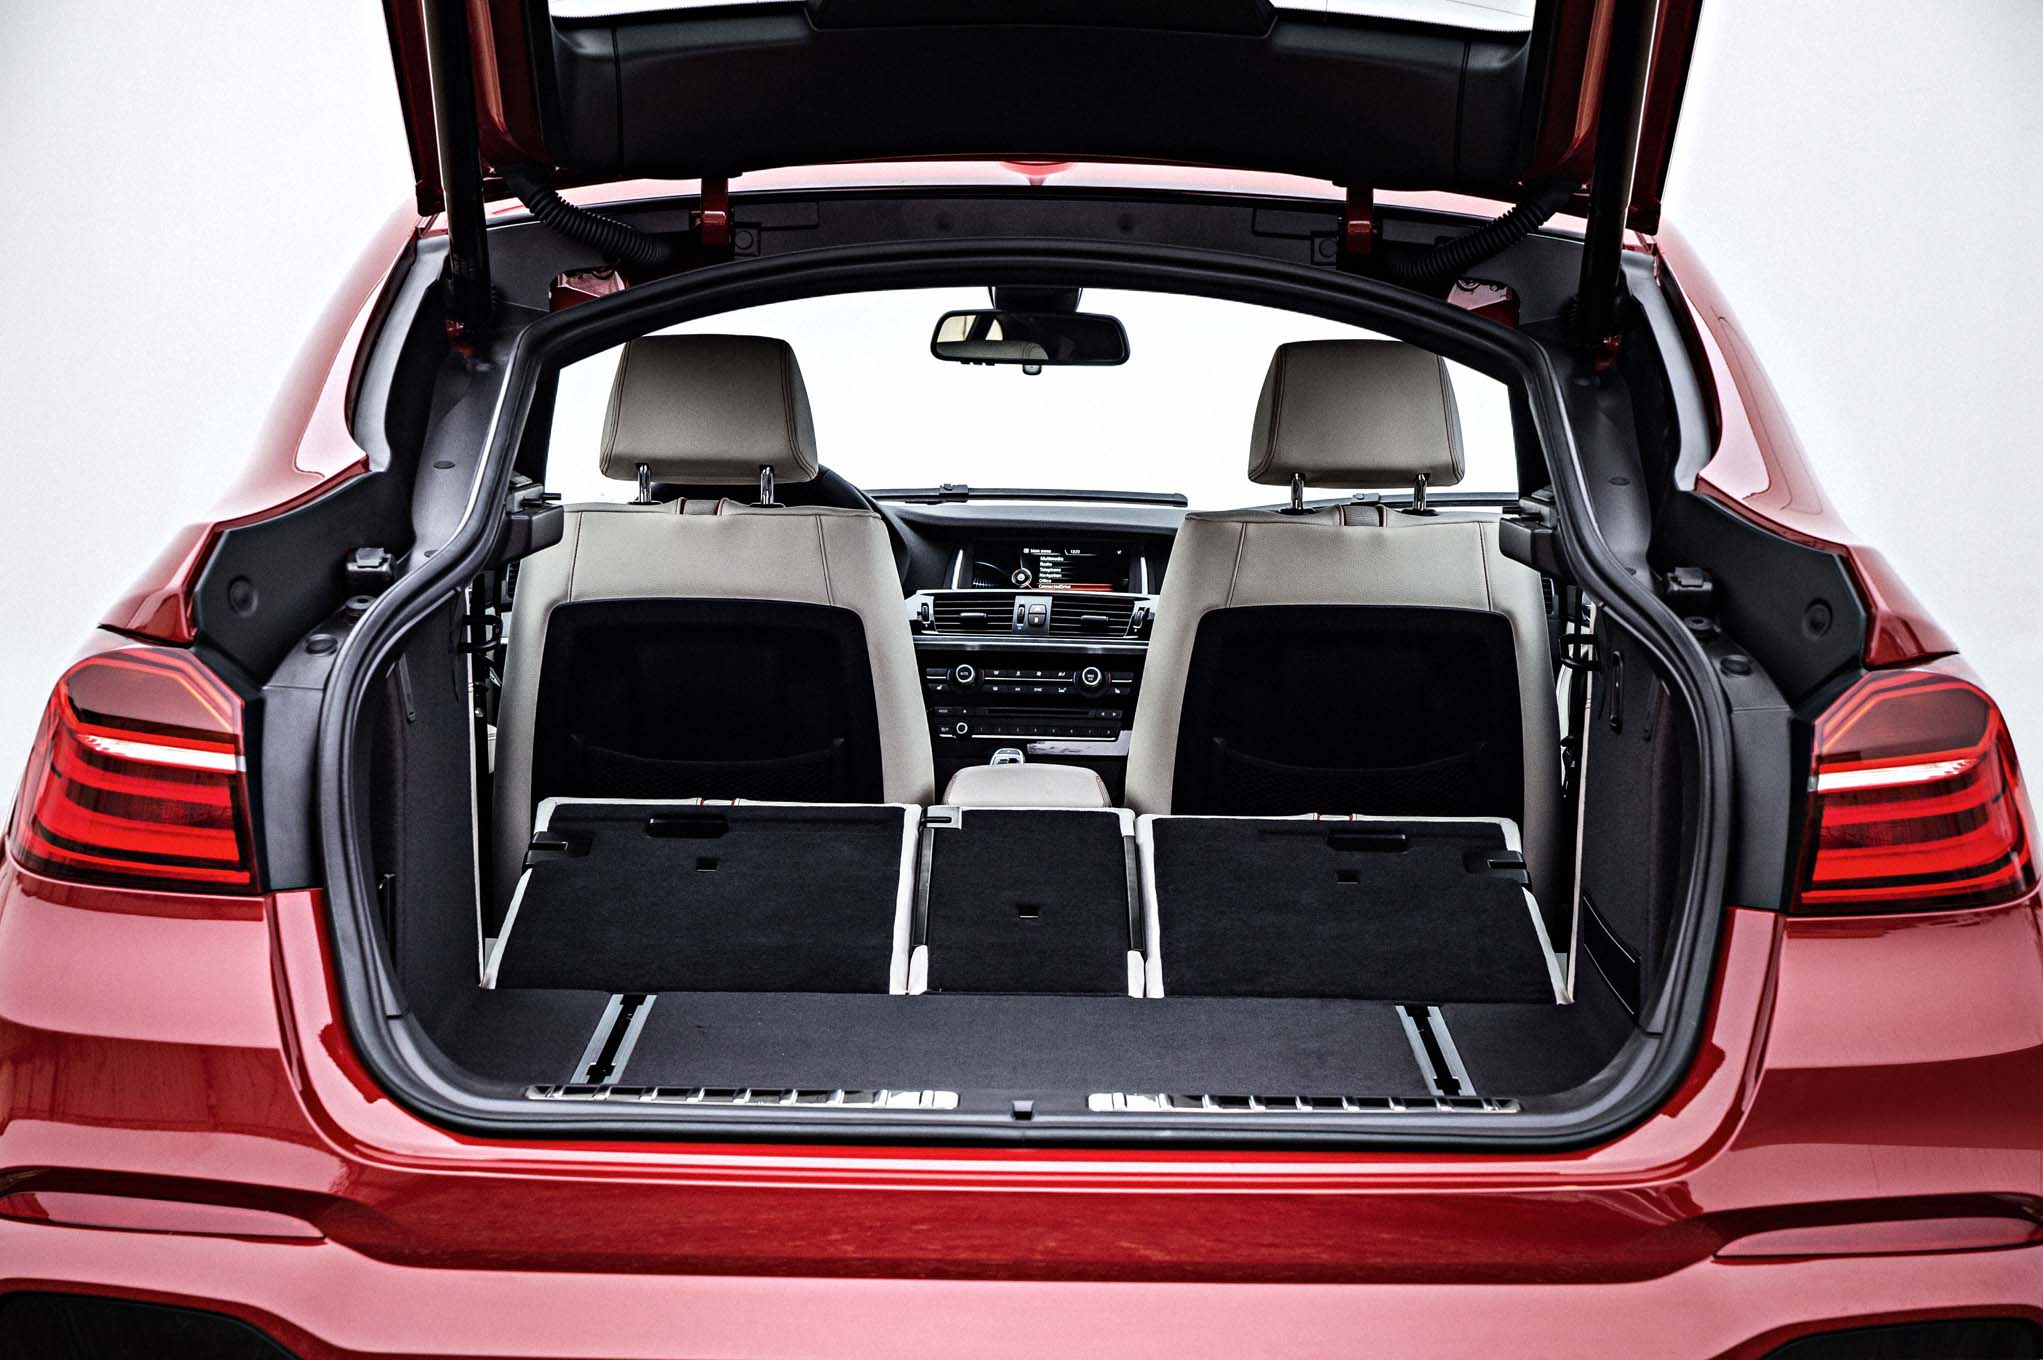 2015 BMW X4 Rear Seat Down and Trunk View